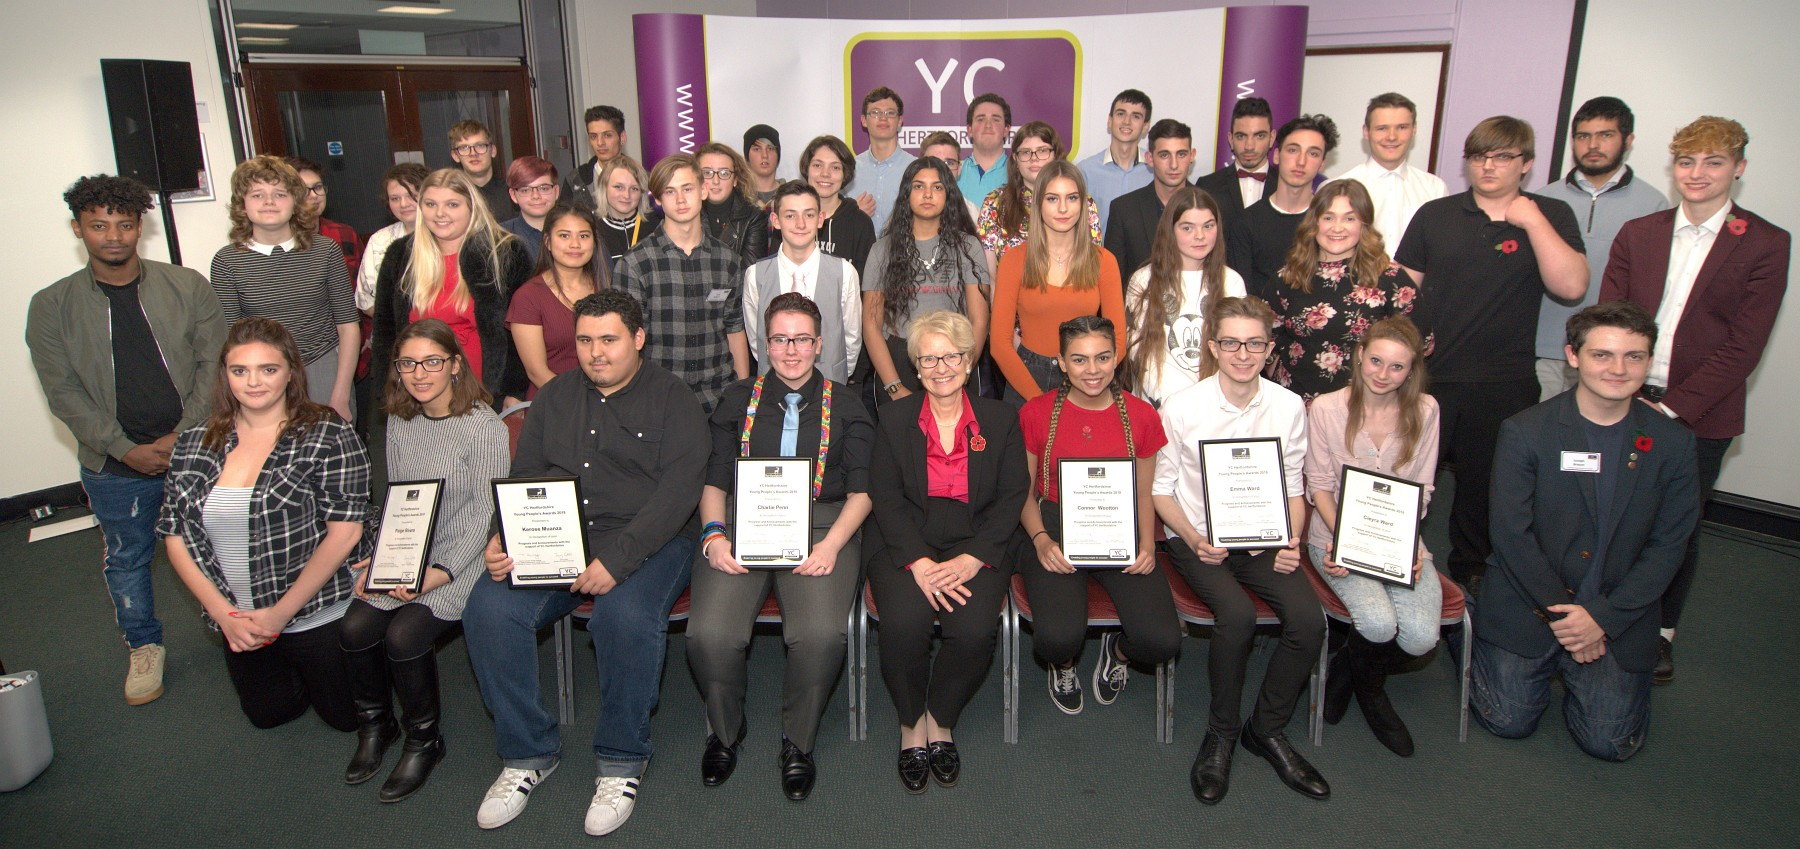 Young people congratulated for their hard work and success at YC Hertfordshire's Young People's Awards 2018